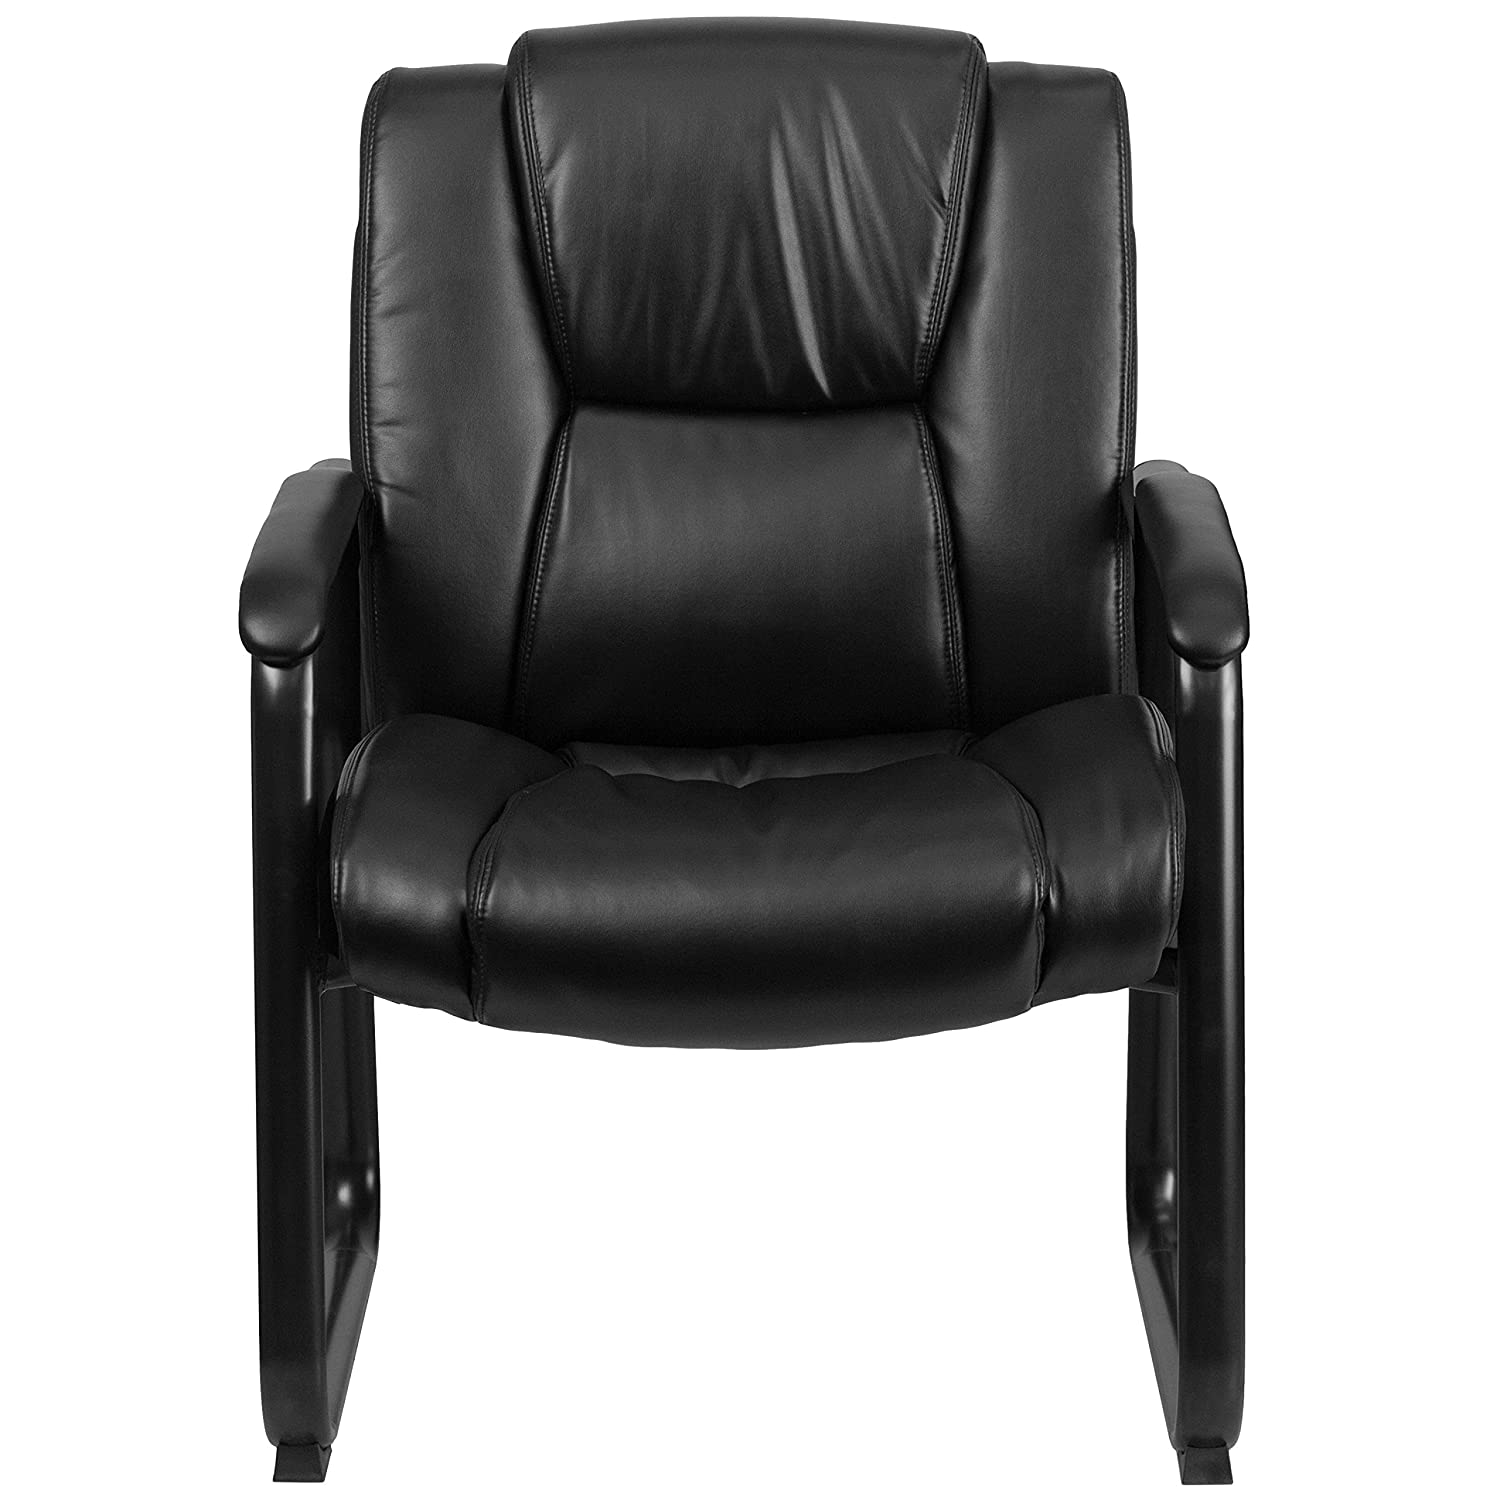 Amazon Flash Furniture HERCULES Series Big & Tall 500 lb